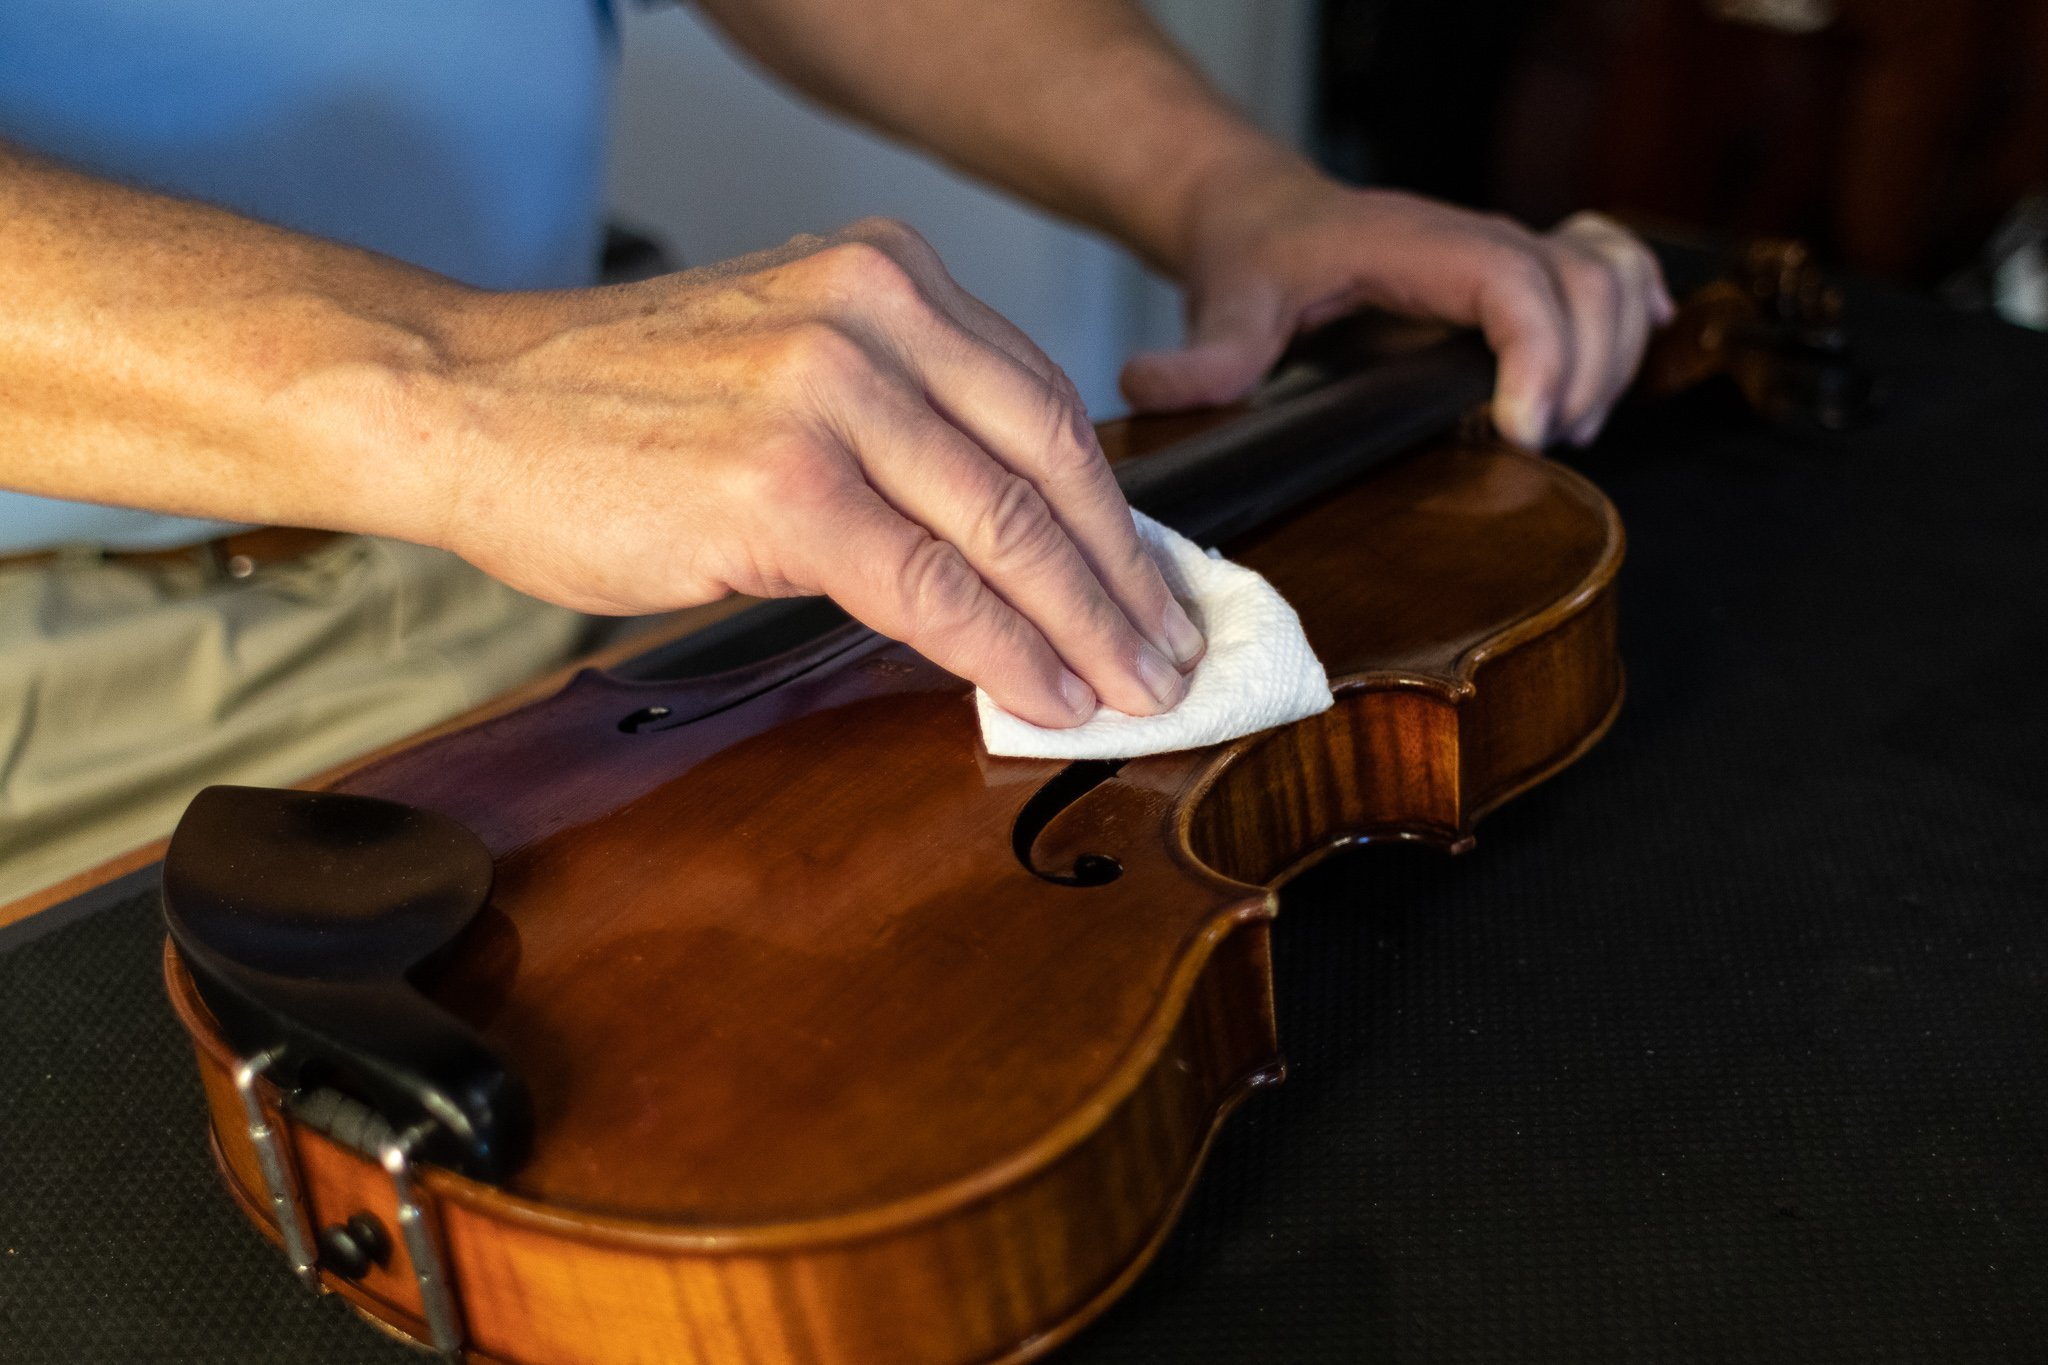 A string technician polishes a violin